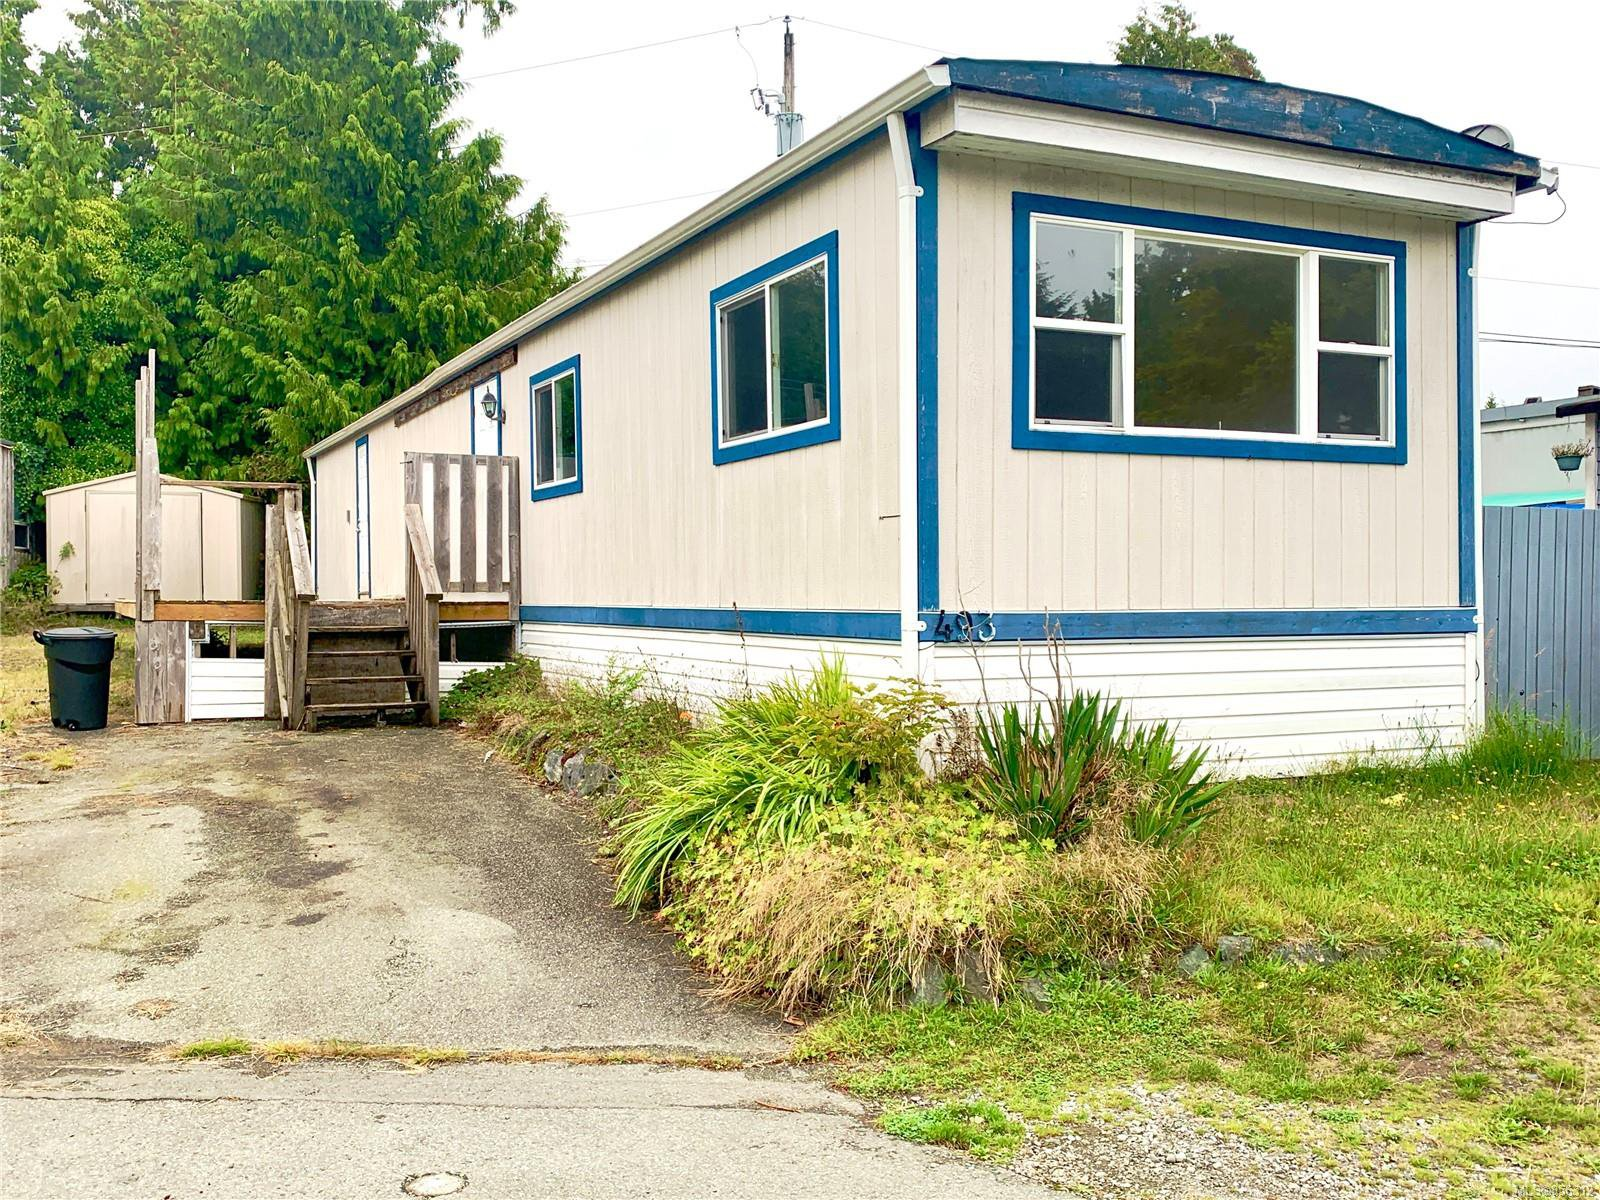 Main Photo: 493 Orca Cres in : PA Ucluelet Manufactured Home for sale (Port Alberni)  : MLS®# 856312